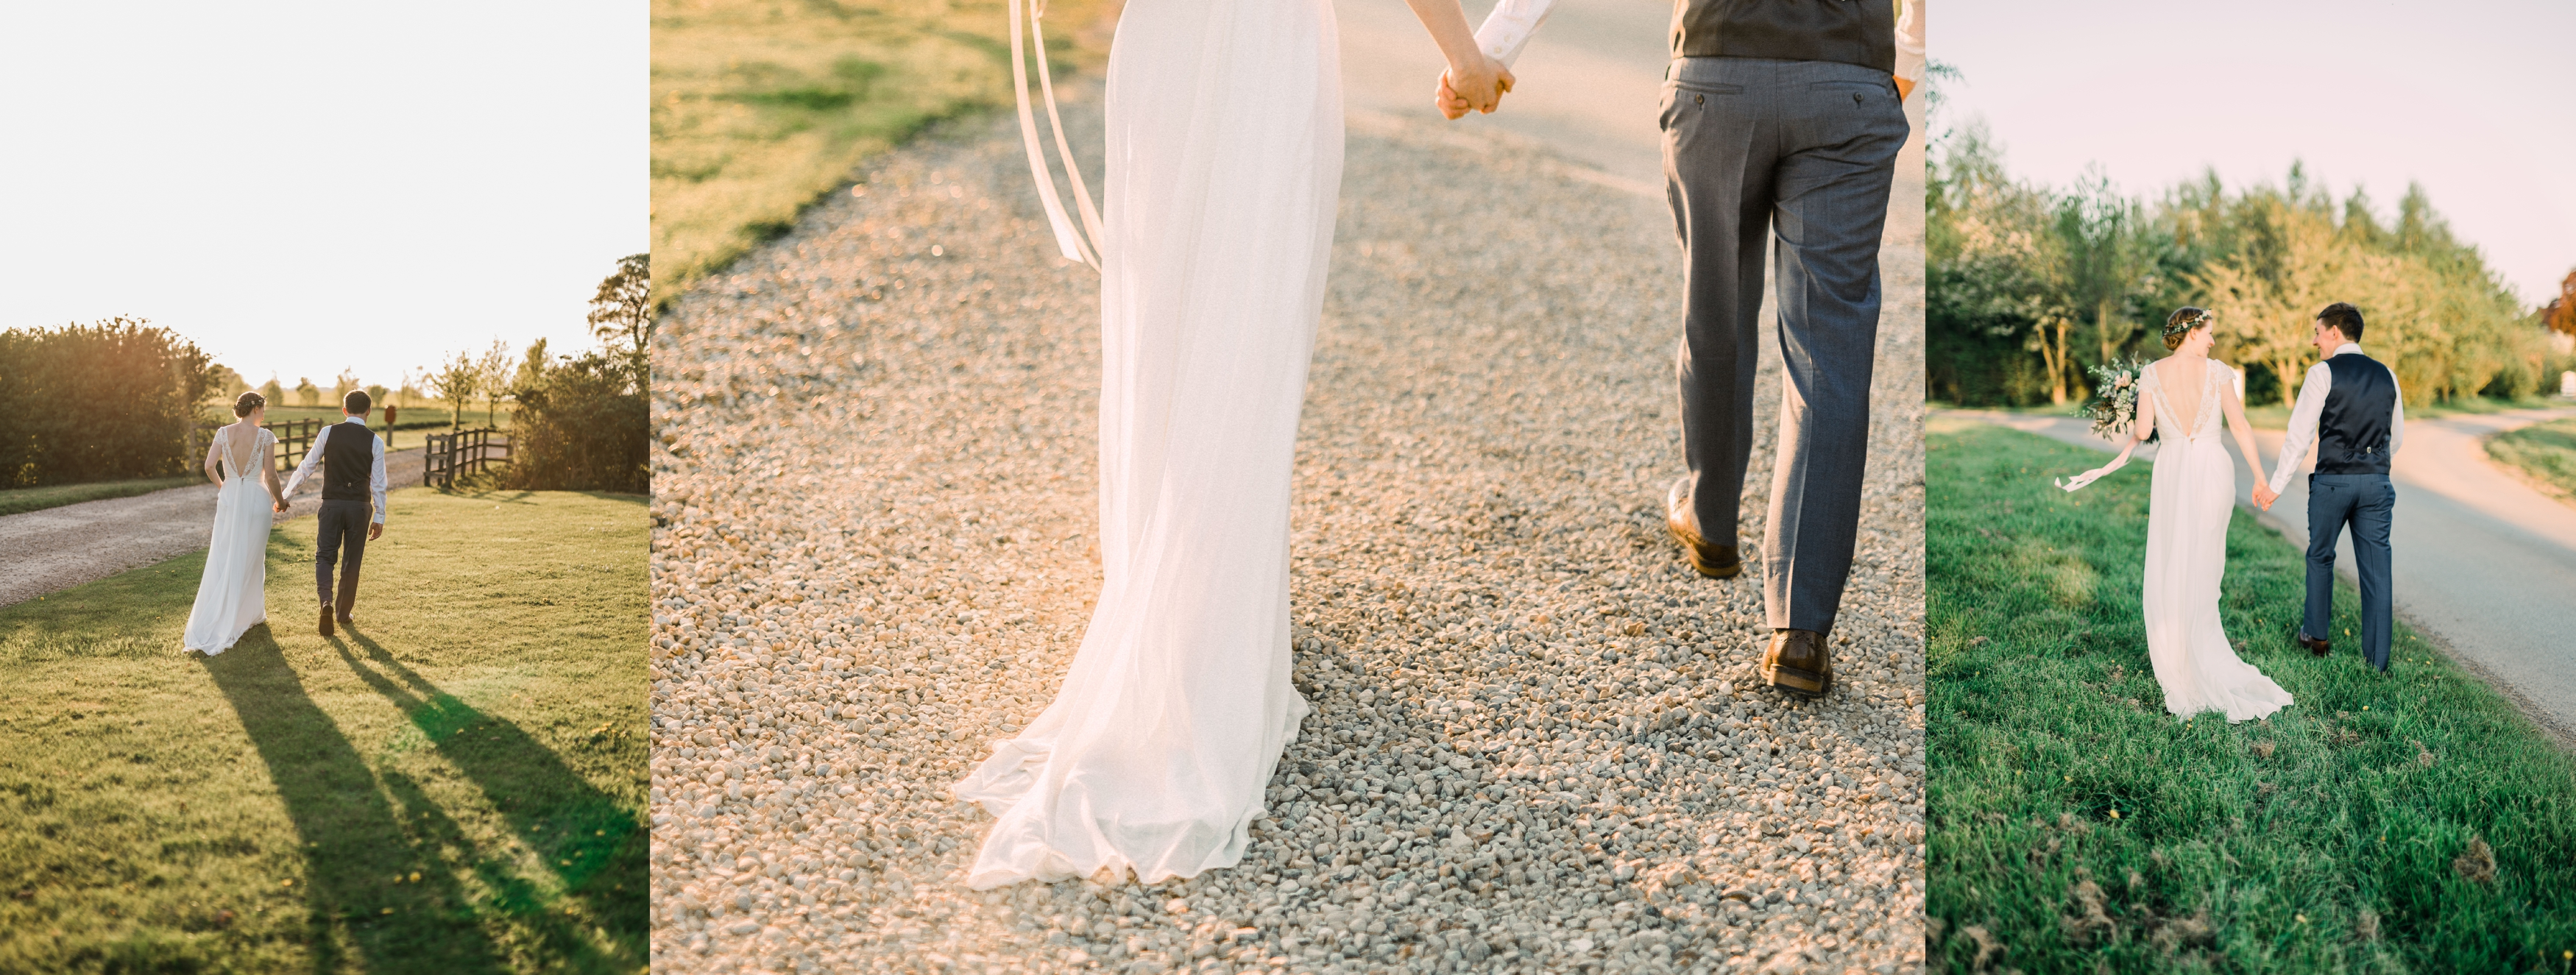 bride and groom walk into the sunset